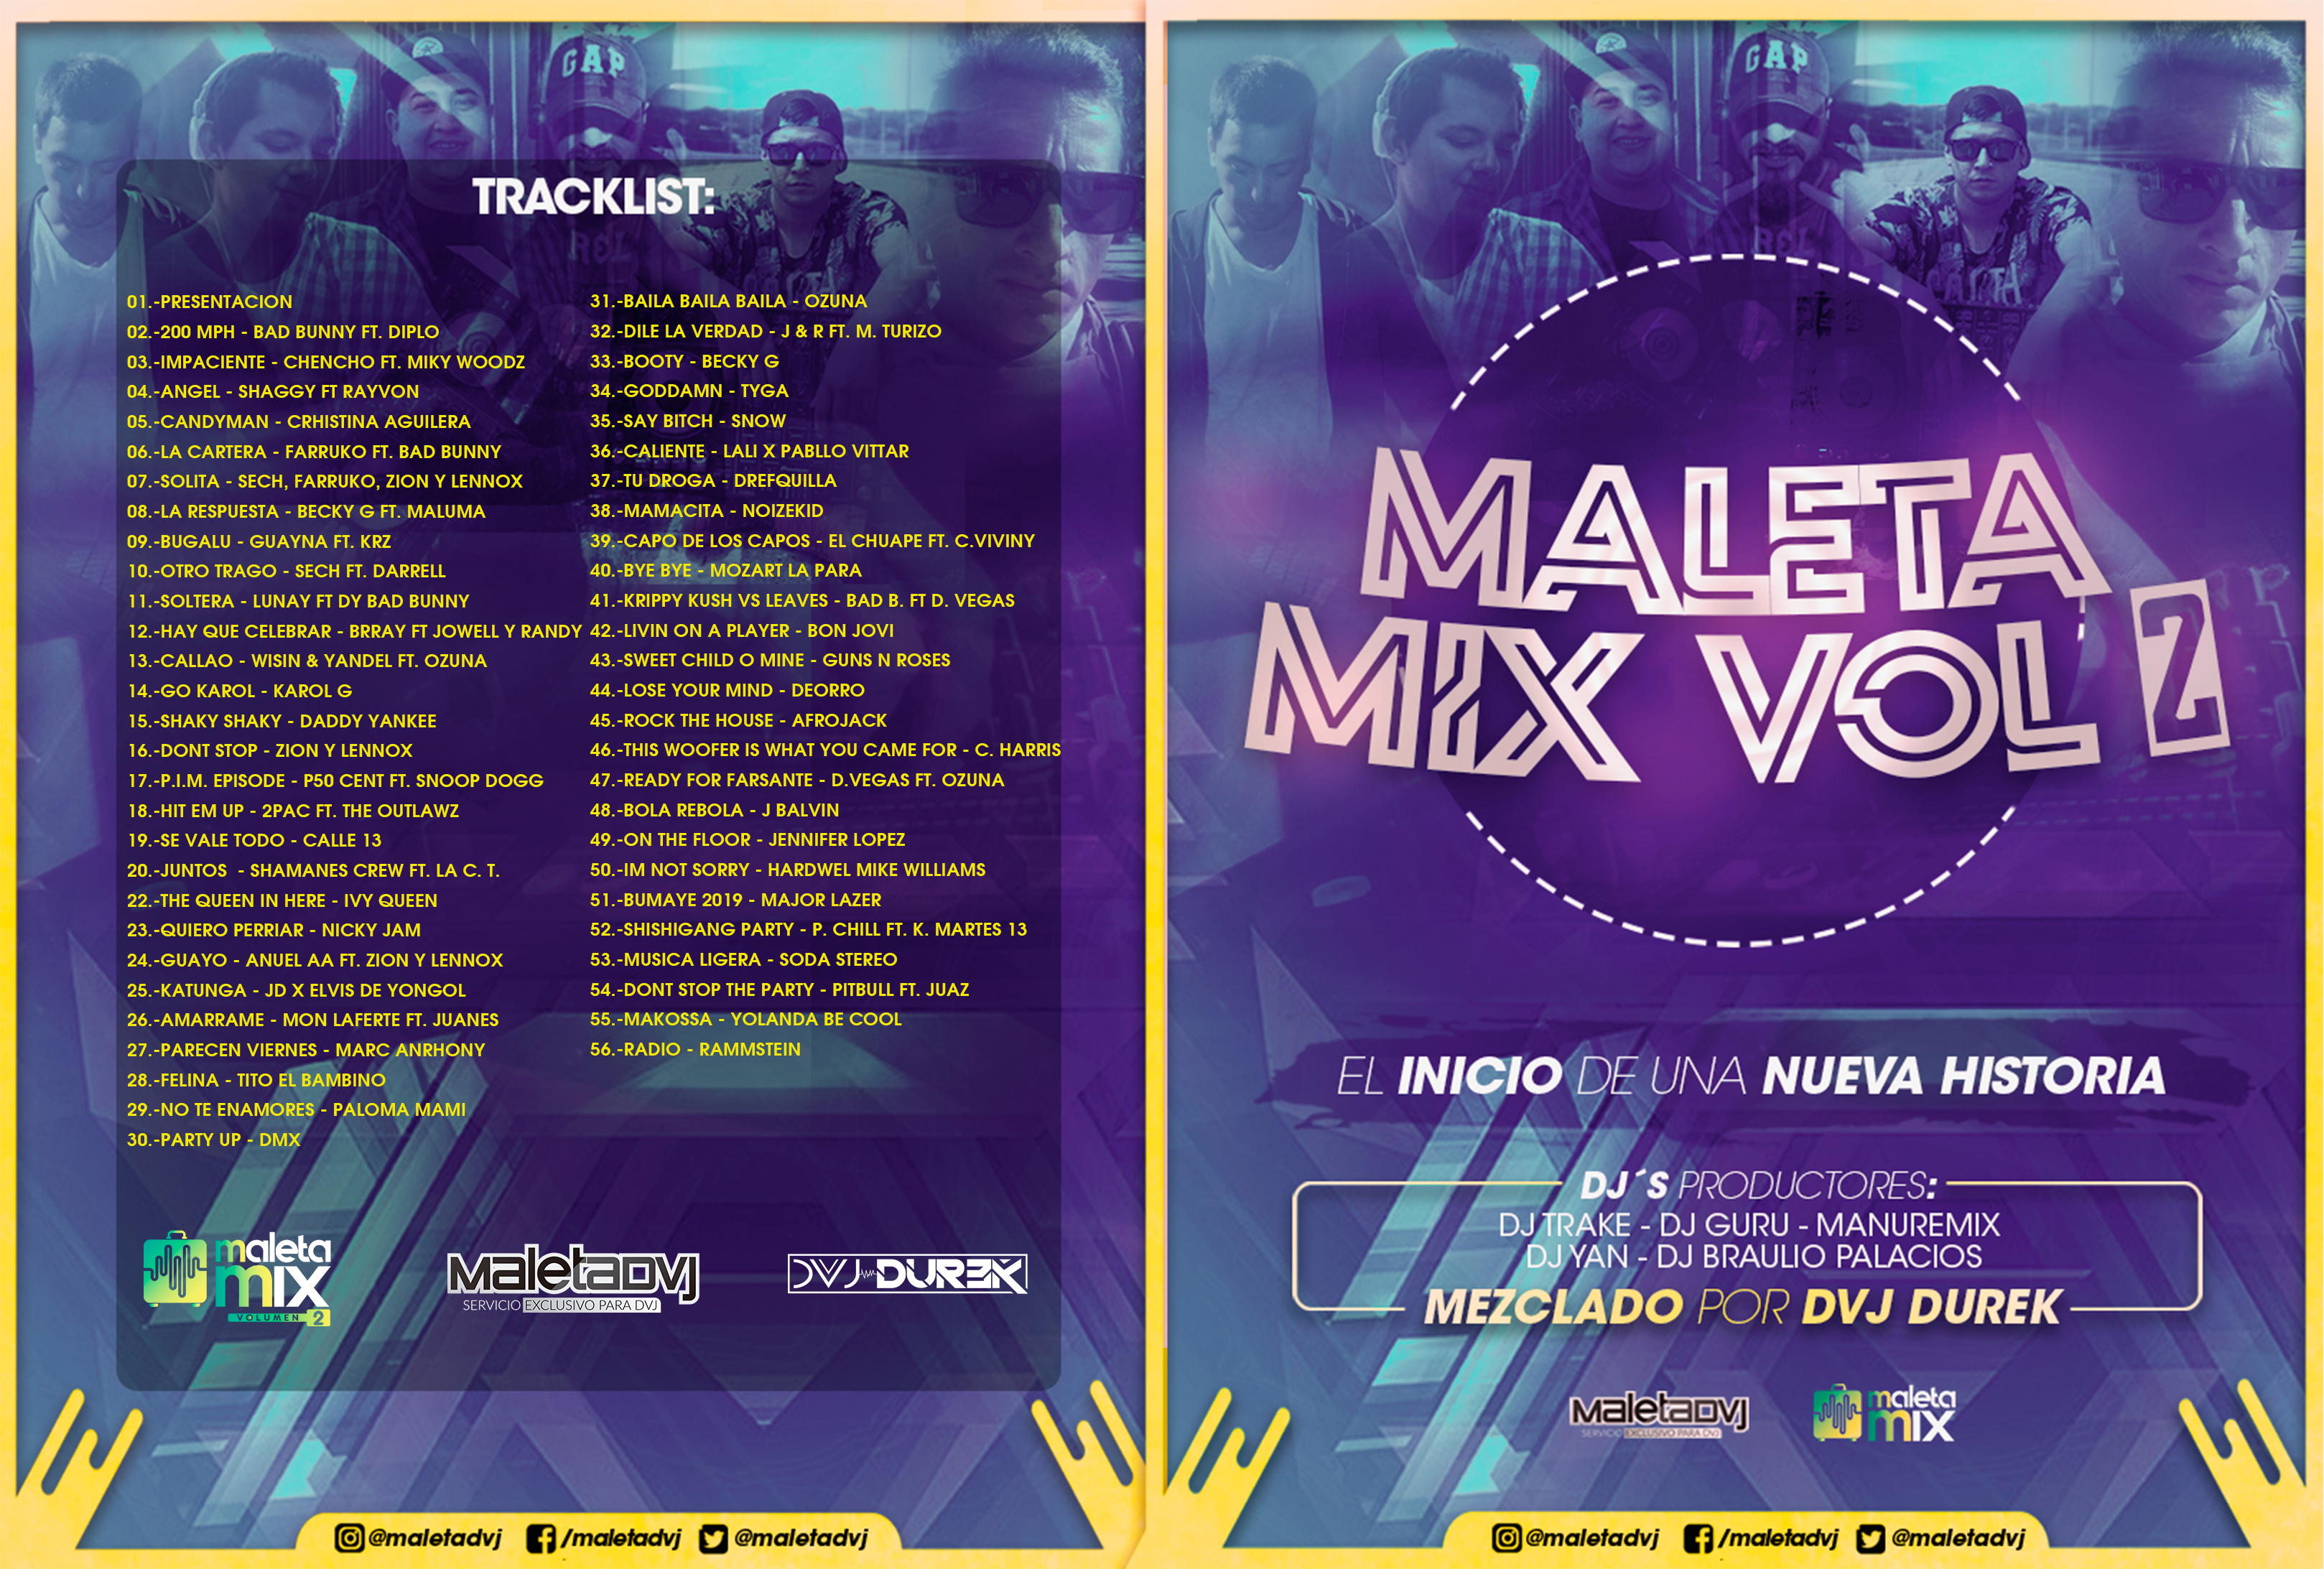 caratula-maletamix-vol.2